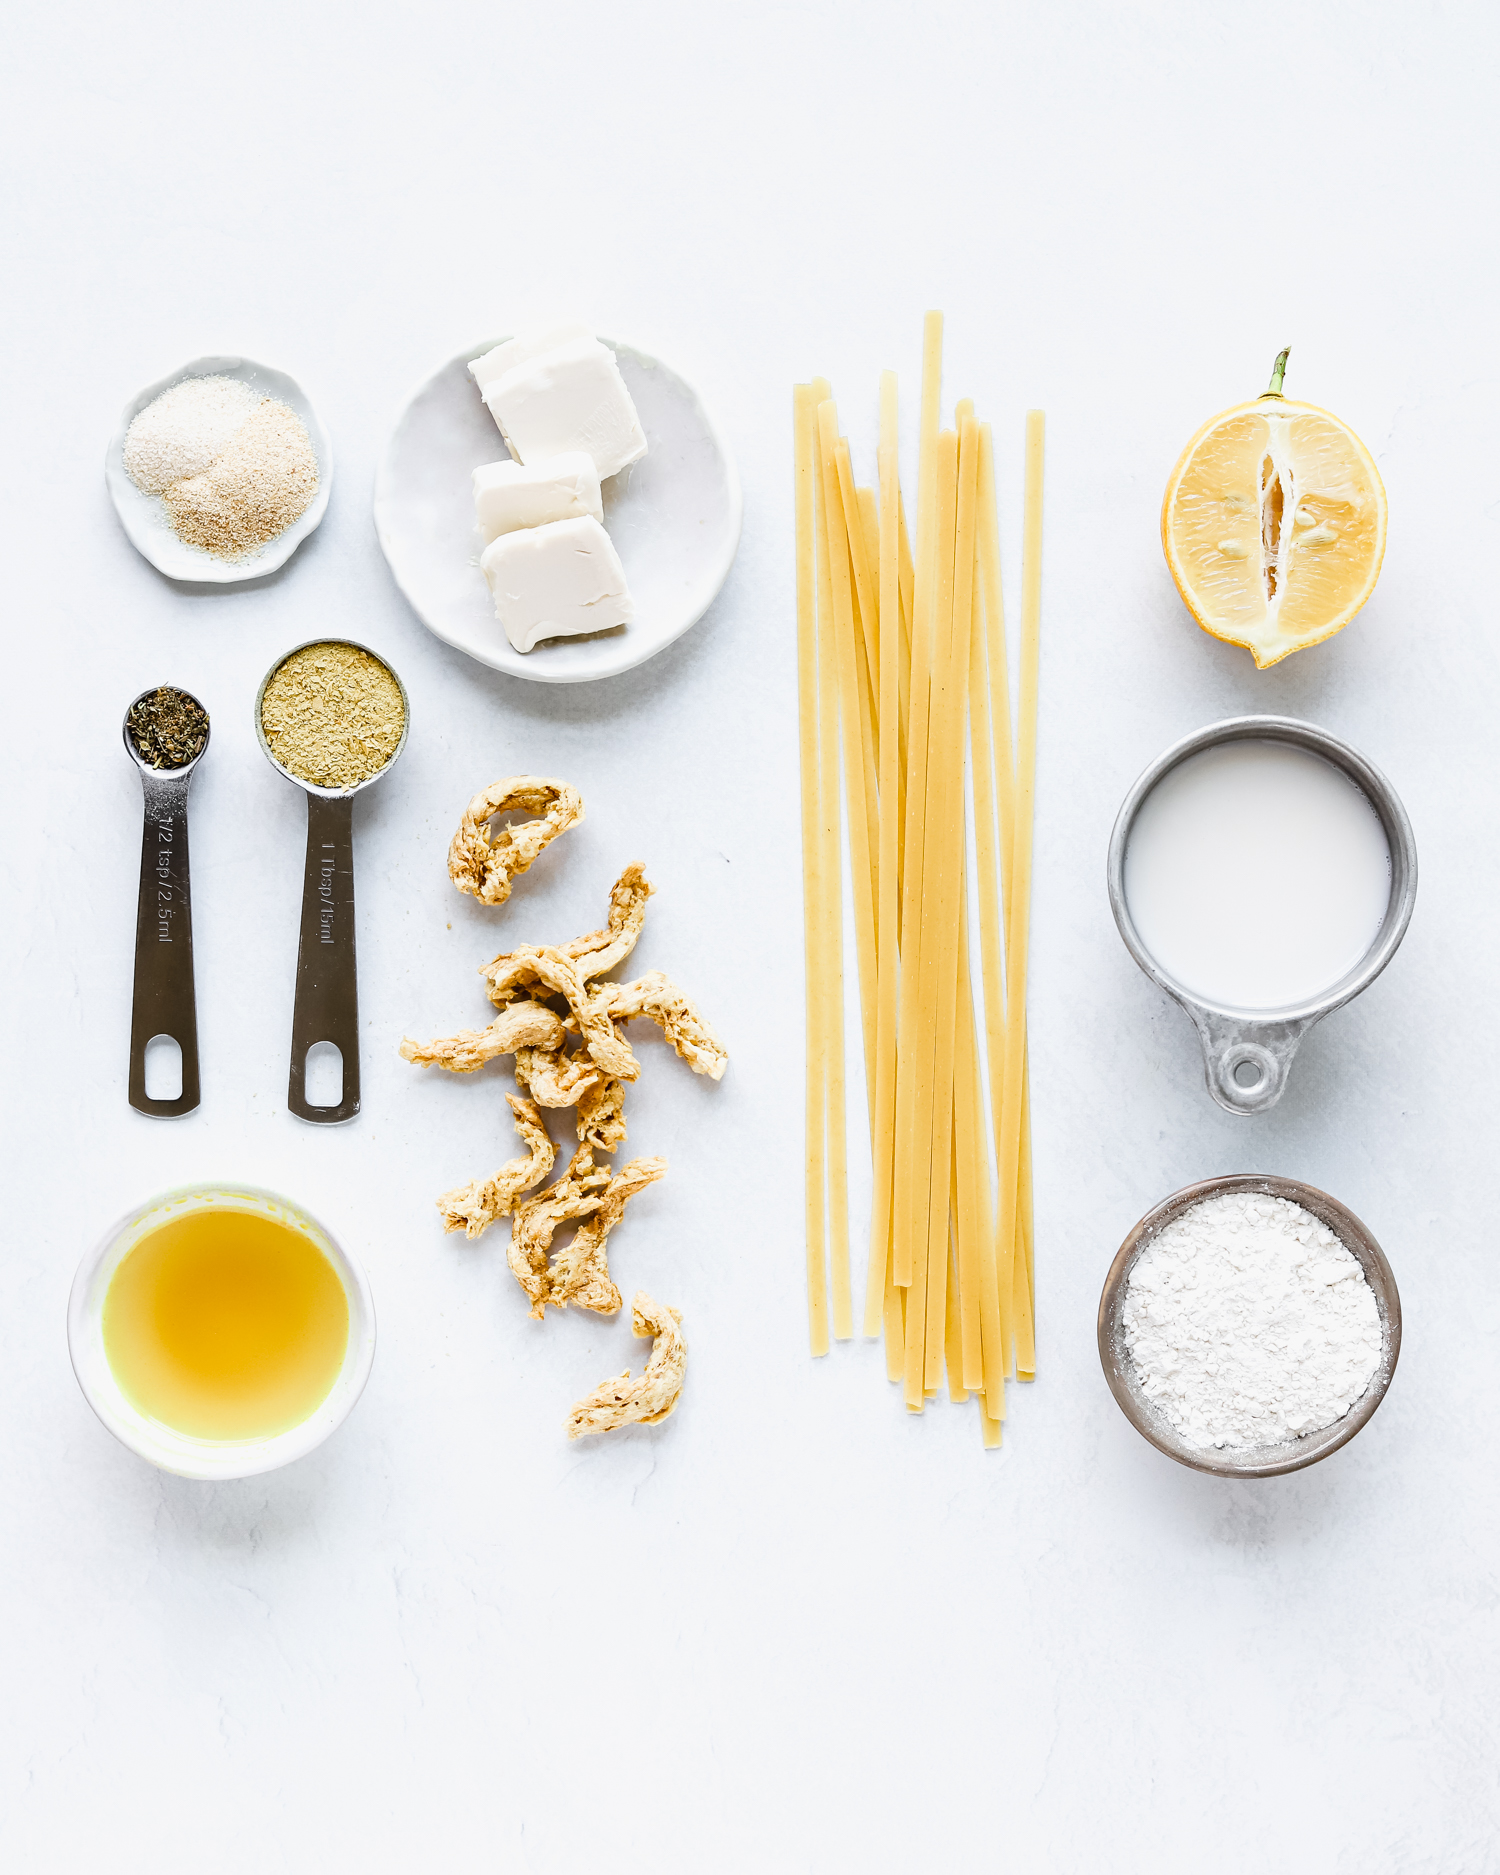 Ingredients to make healthy vegan fettuccine alfredo pasta with soy curls